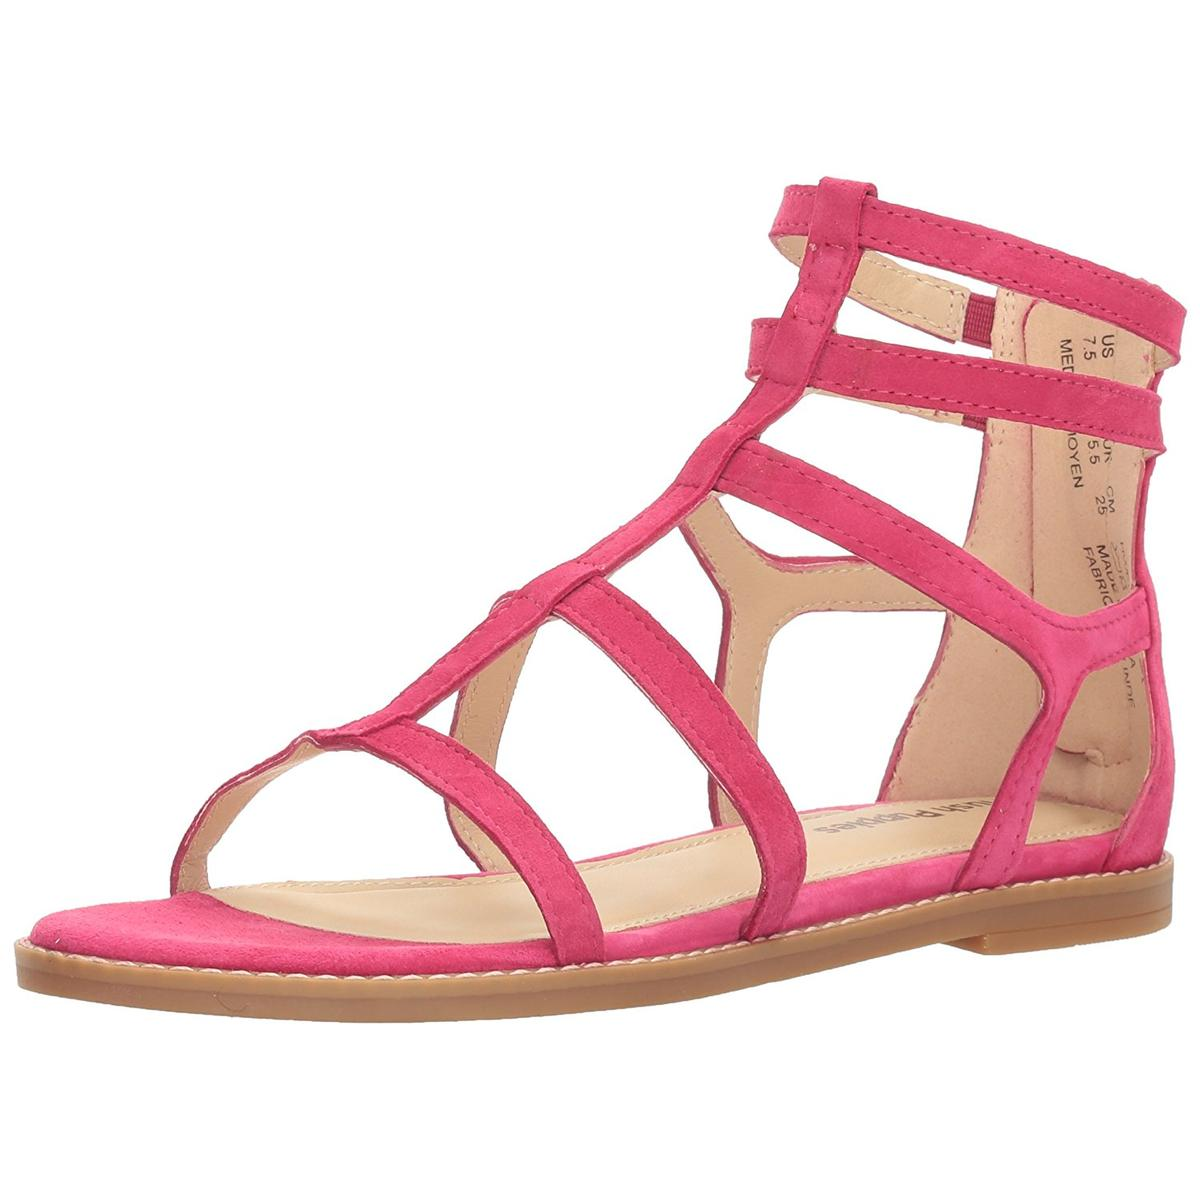 Hush Puppies Abney Chrissie Lo Womens Persian Rose Su Sandals by Hush Puppies